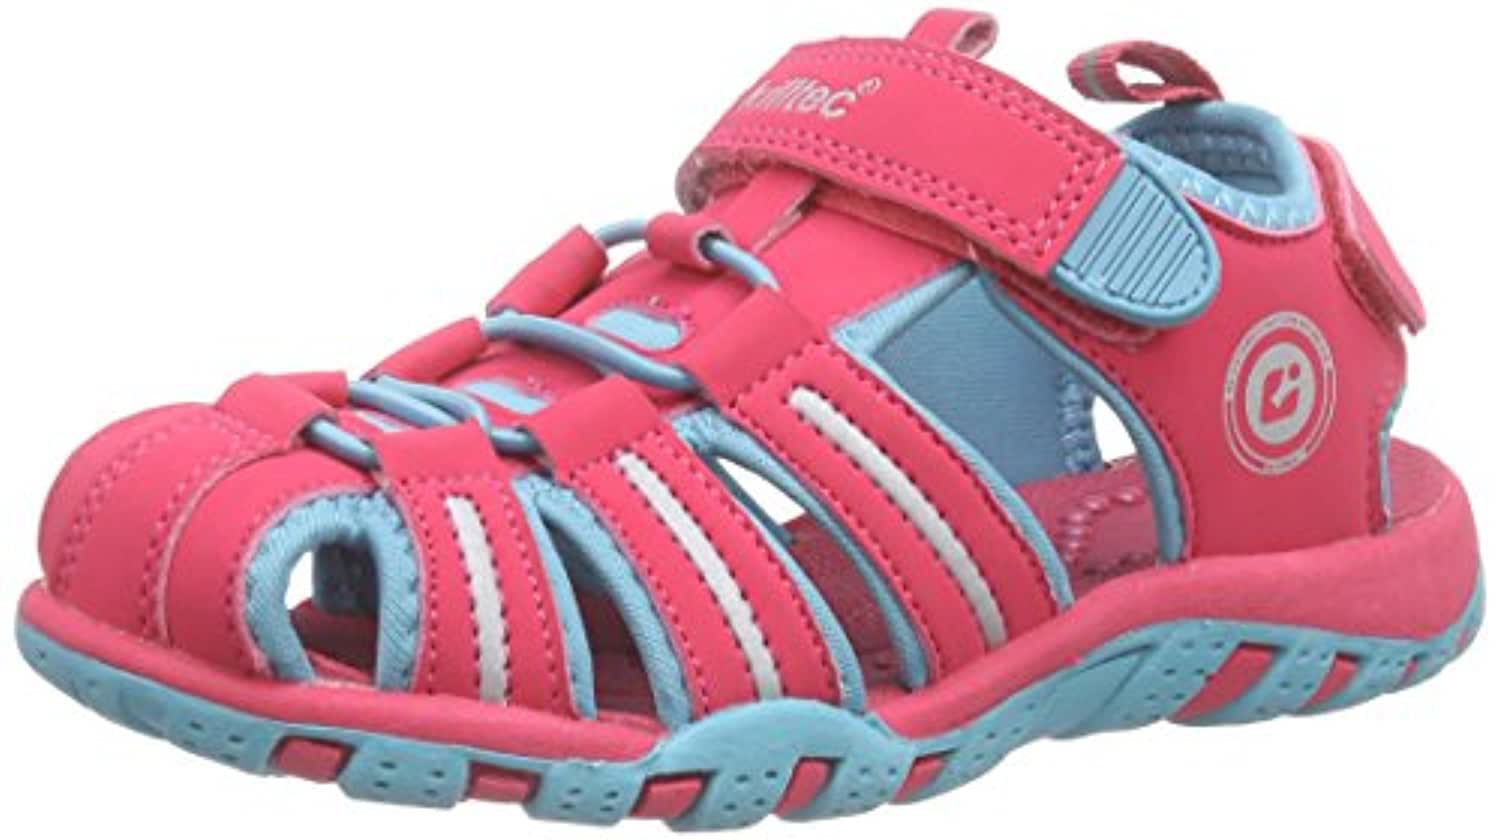 Killtec Unisex Kids' Marimba Jr Open Toe Sandals Pink Size: 1 UK